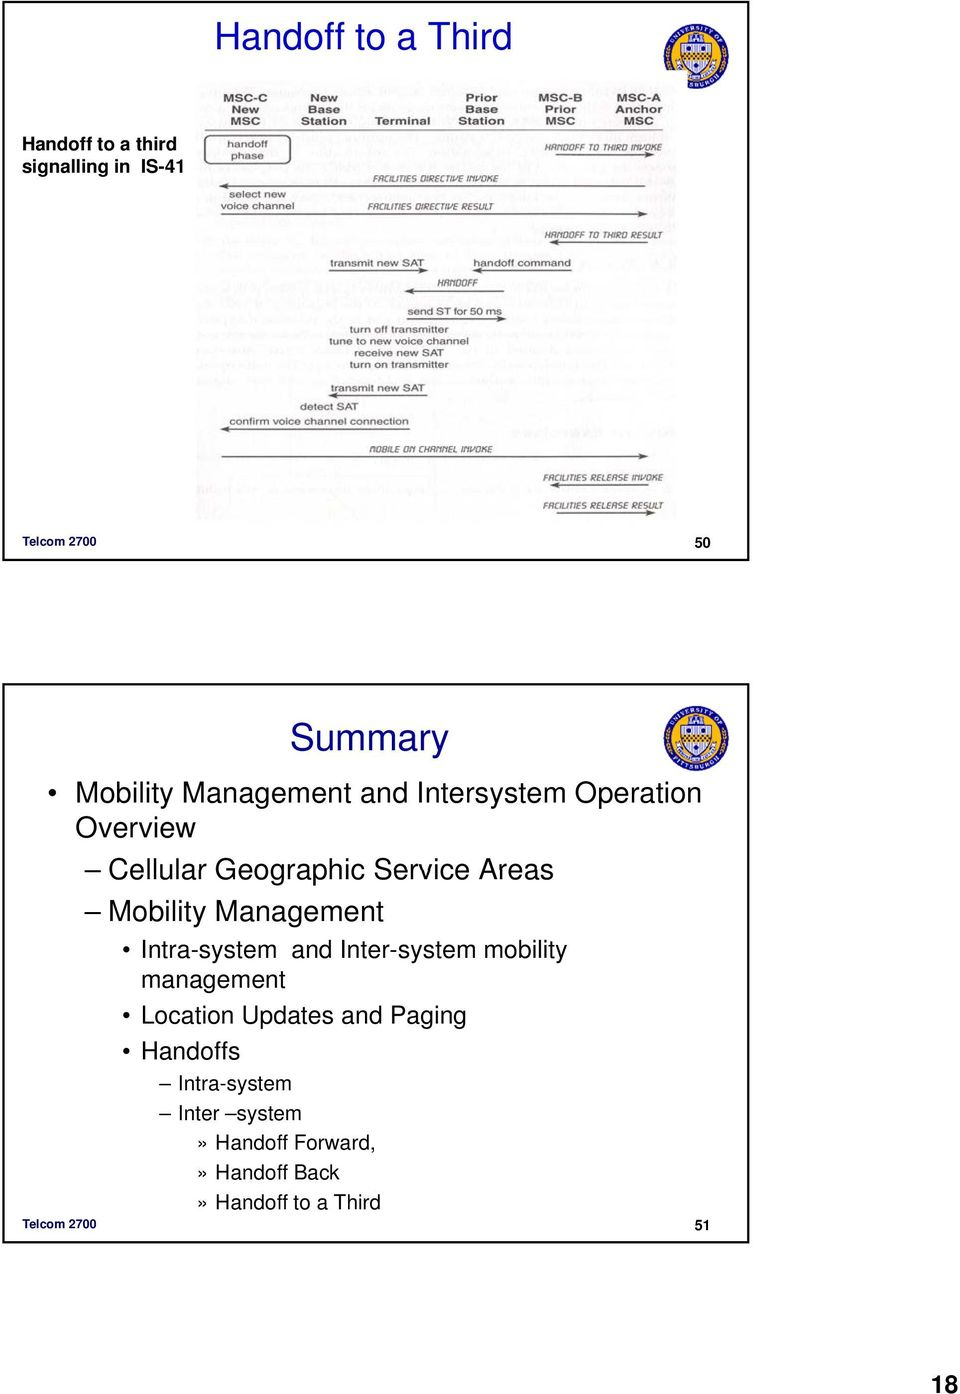 Management Intra-system and Inter-system mobility management Location Updates and Paging